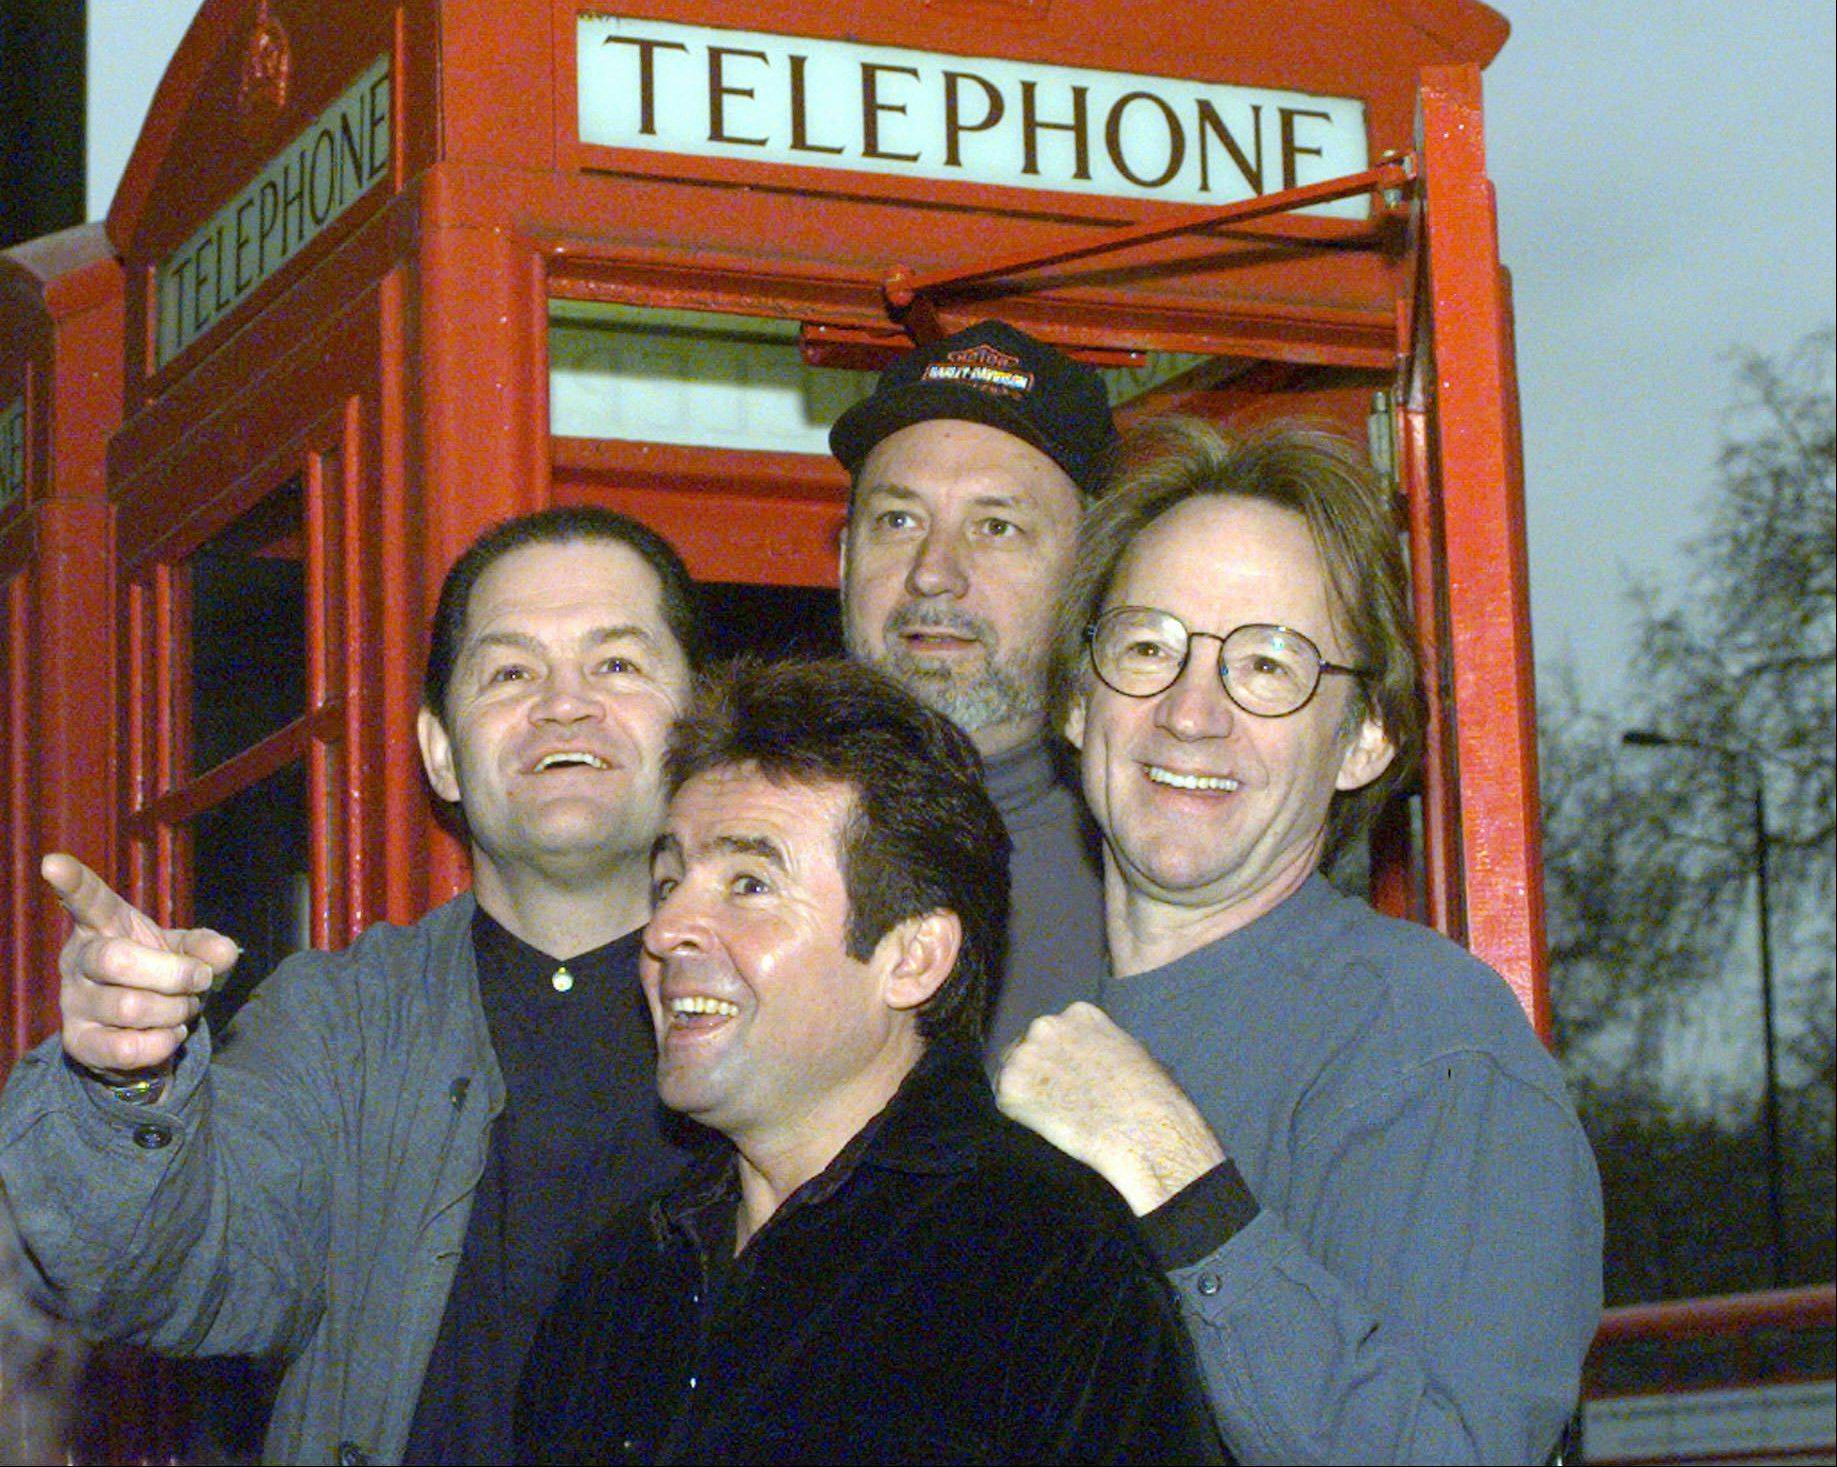 Micky Dolenz, left, Mike Nesmith and Peter Tork of The Monkees (shown in 1997) announced Wednesday that the group will launch a 12-date U.S. tour in November. It's the band's first tour since Davy Jones, front, died in February.